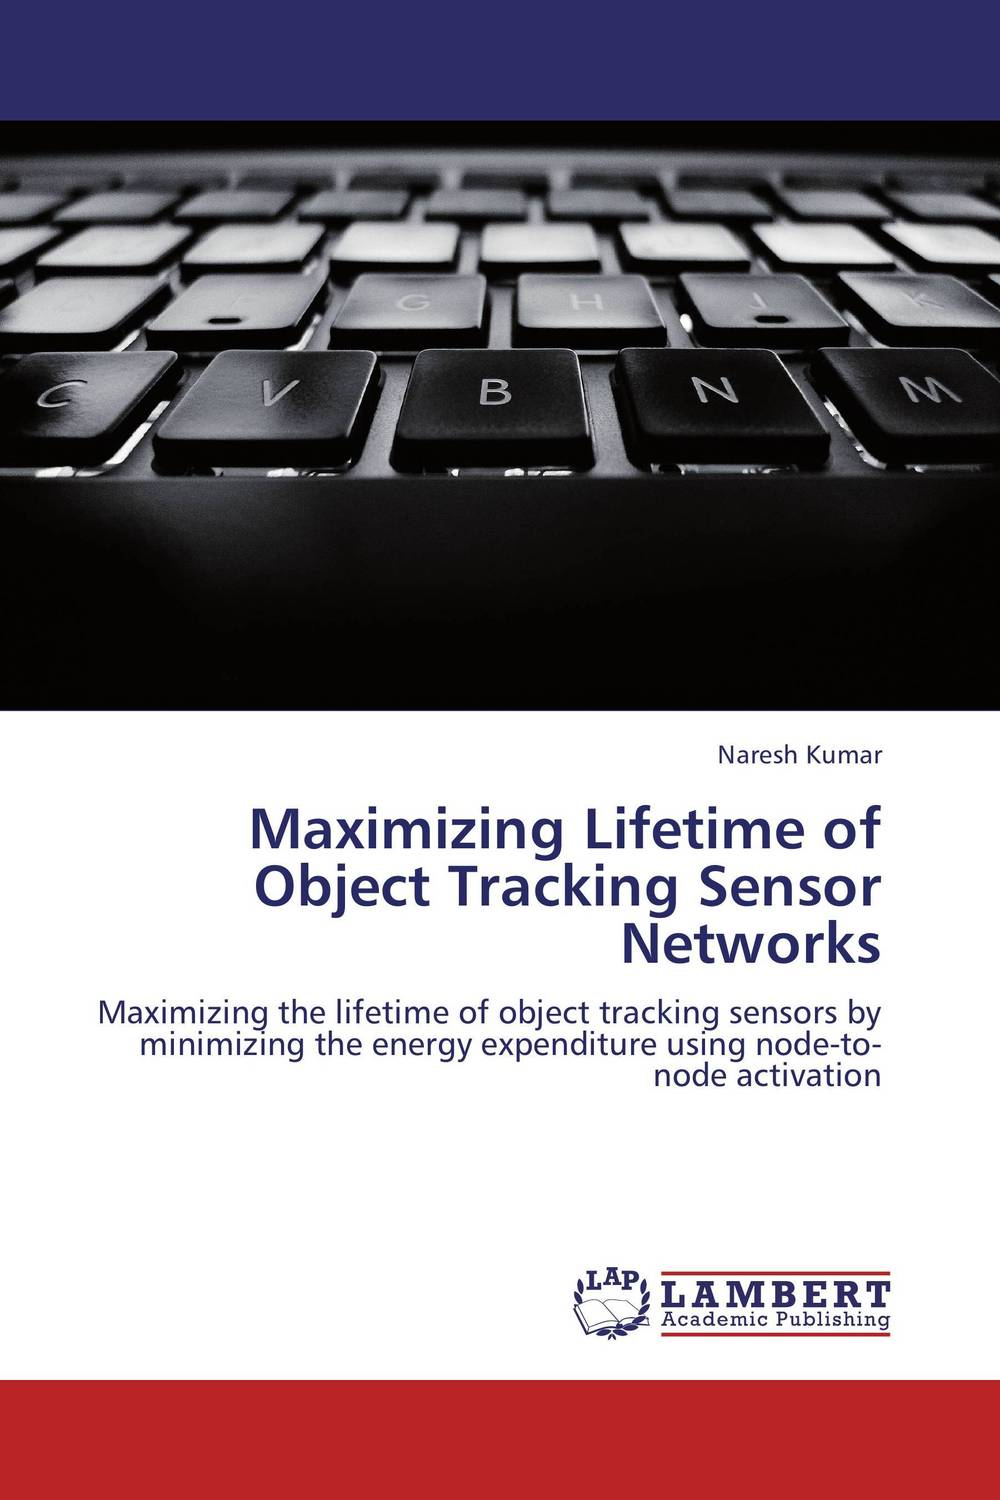 Maximizing Lifetime of Object Tracking Sensor Networks video object tracking